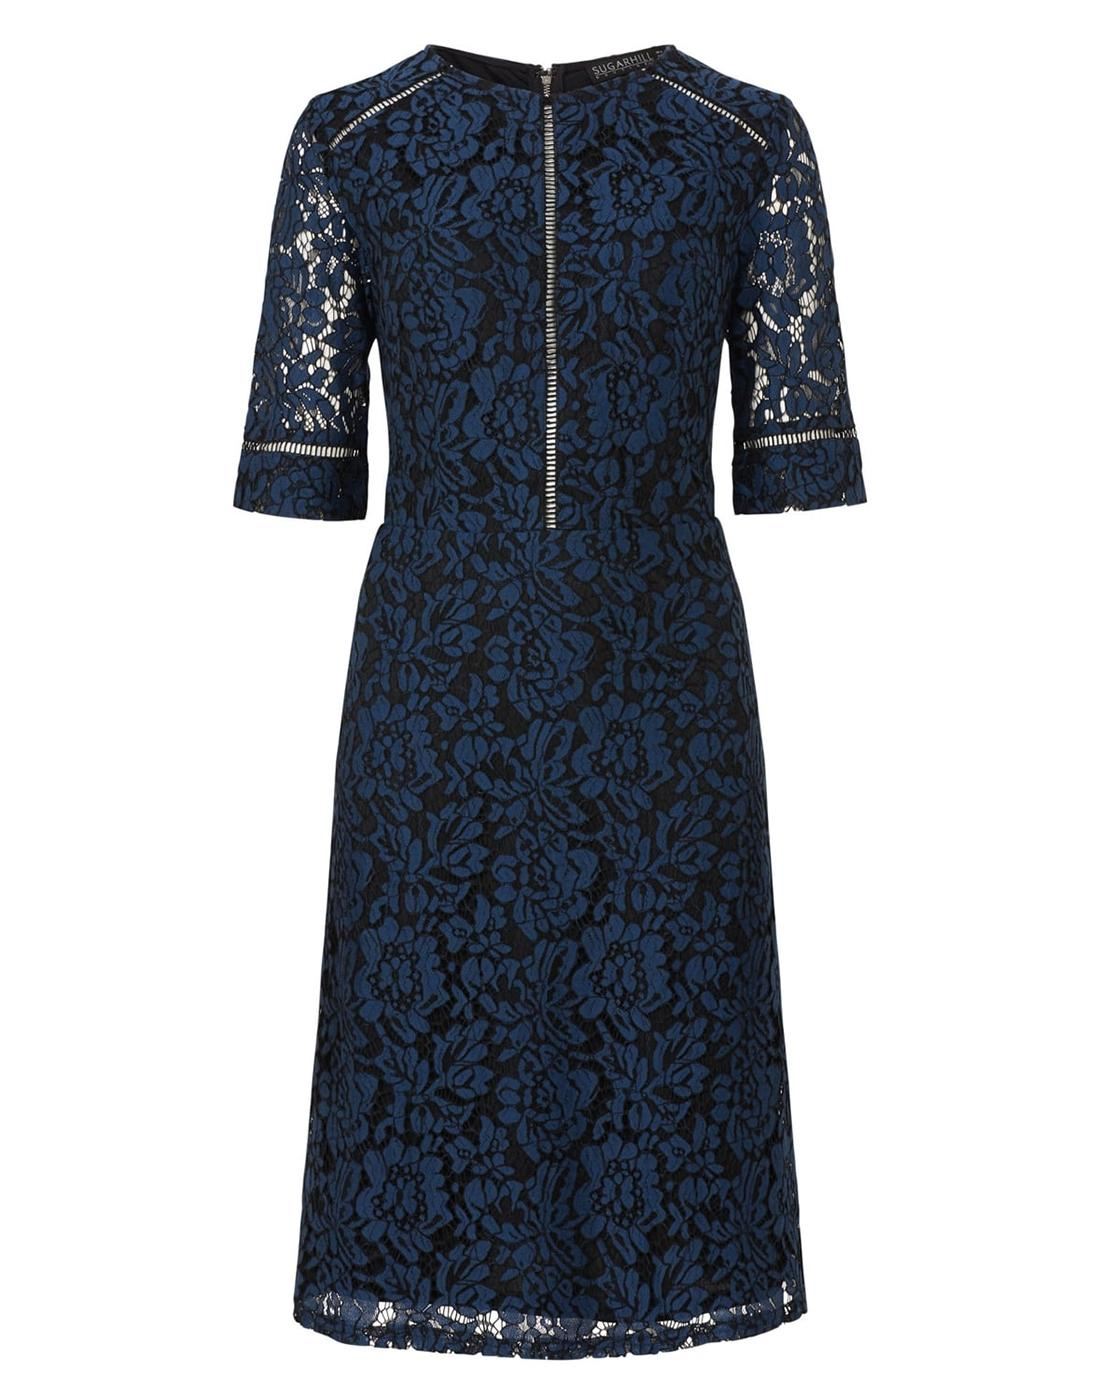 Rosemary SUGARHILL BOUTIQUE Vintage Lace Dress